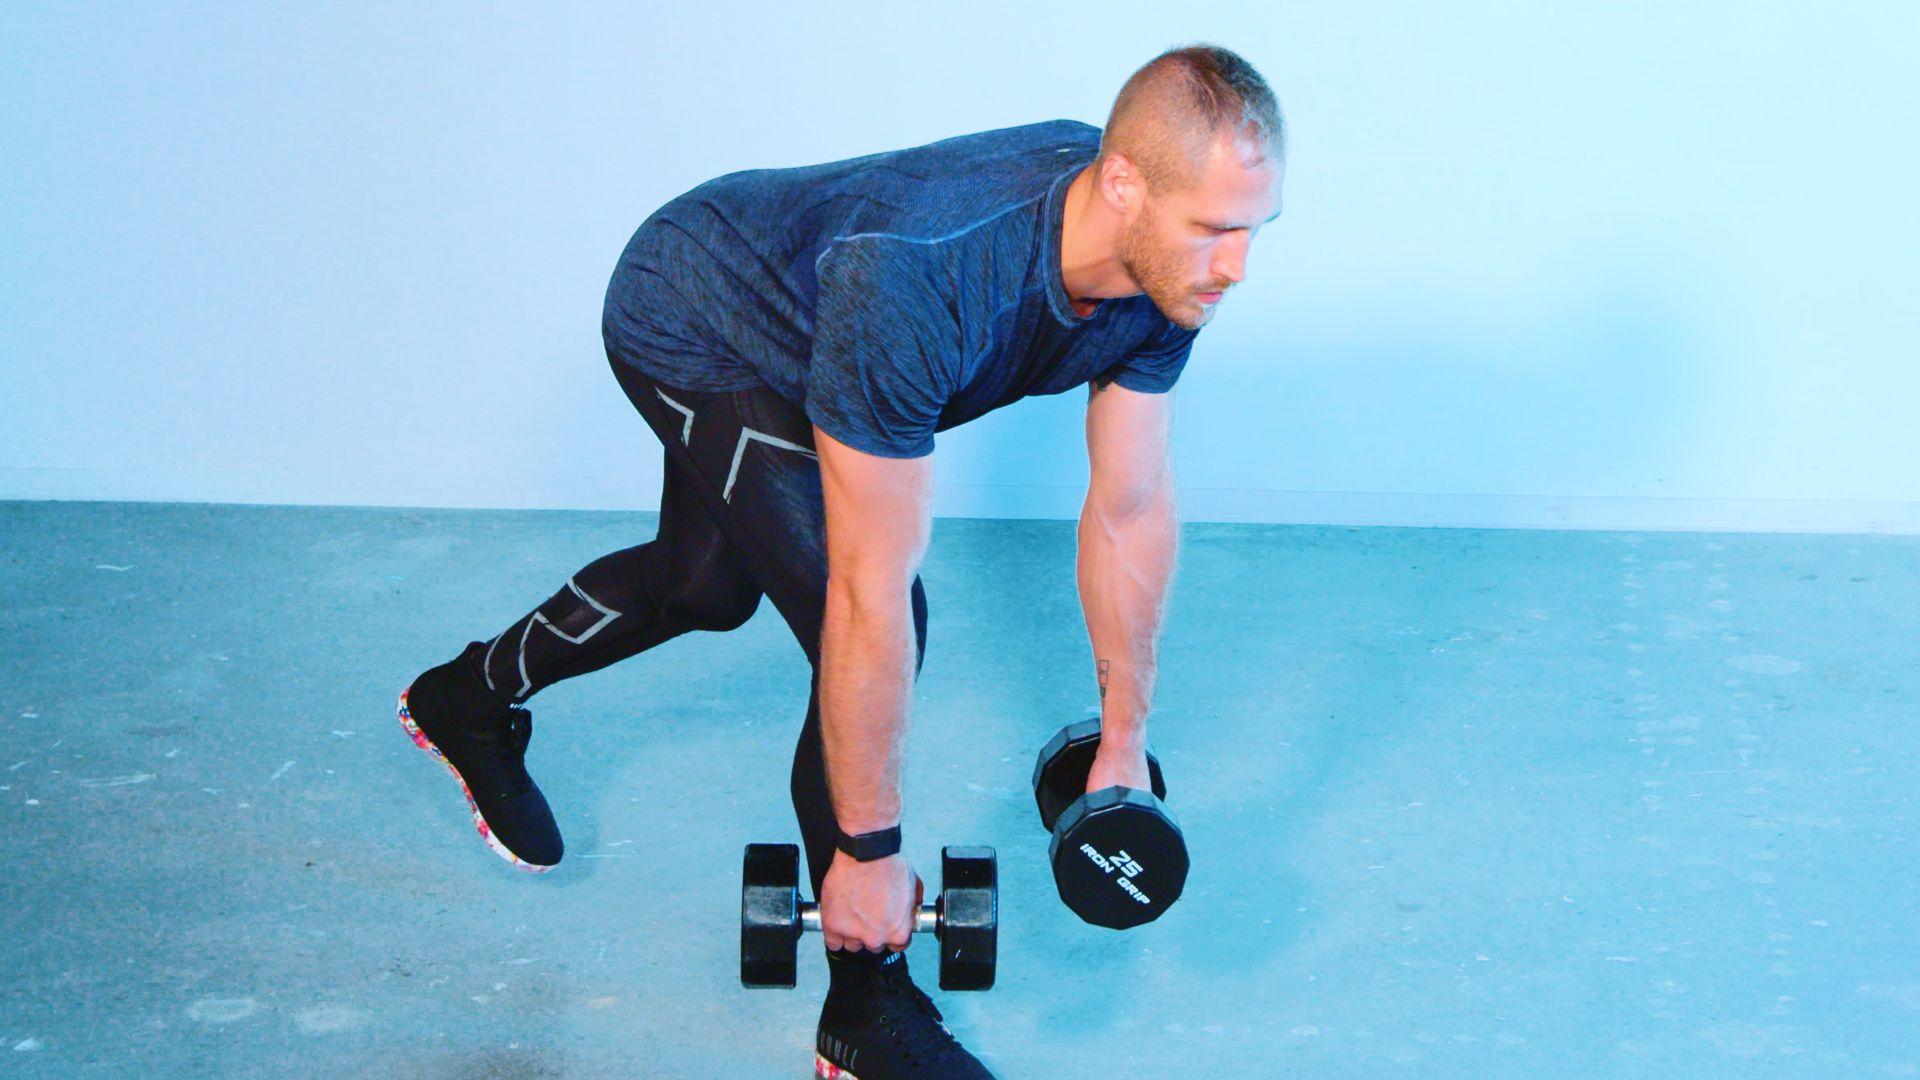 How The Single Leg Deadlift Exercise Can Build Your Hamstrings